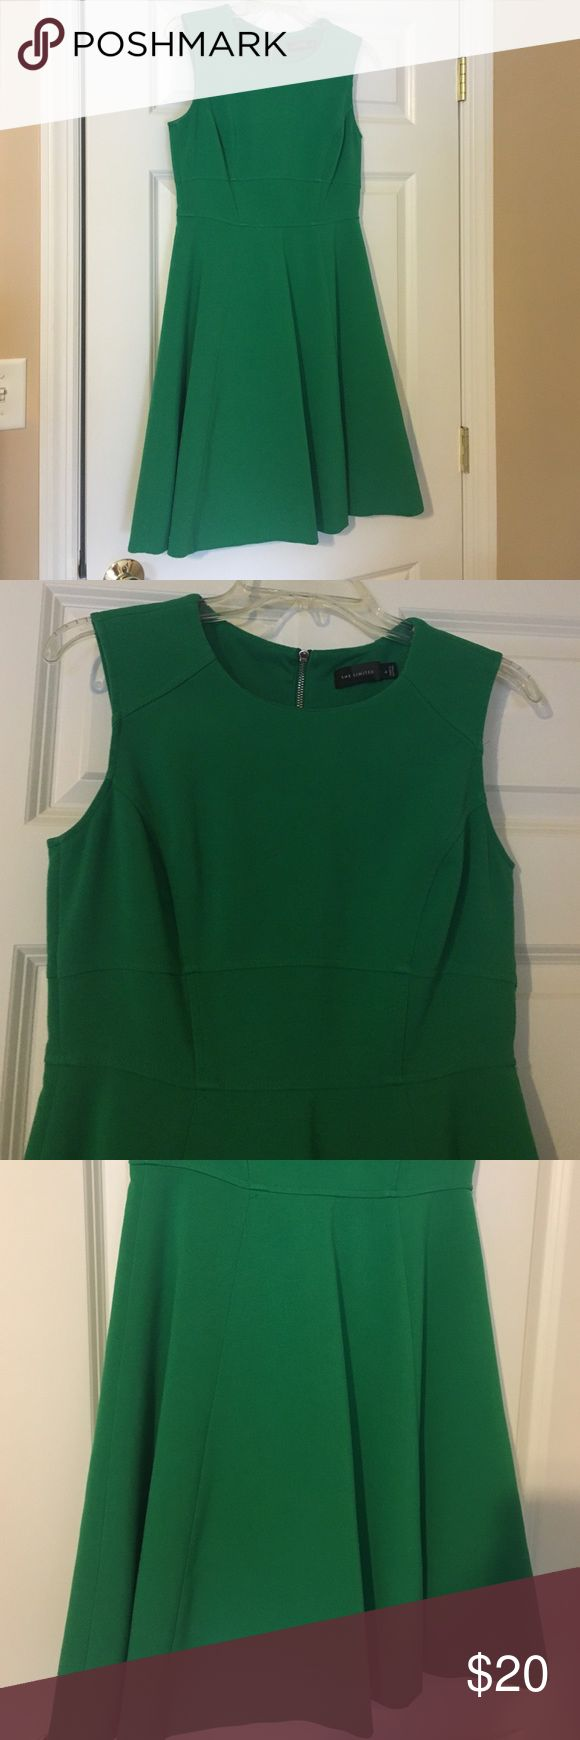 Kelly green dress from The Limited Great looking kelly green dress from The Limited. Worn but well cared for. Great spring dress and color! The Limited Dresses